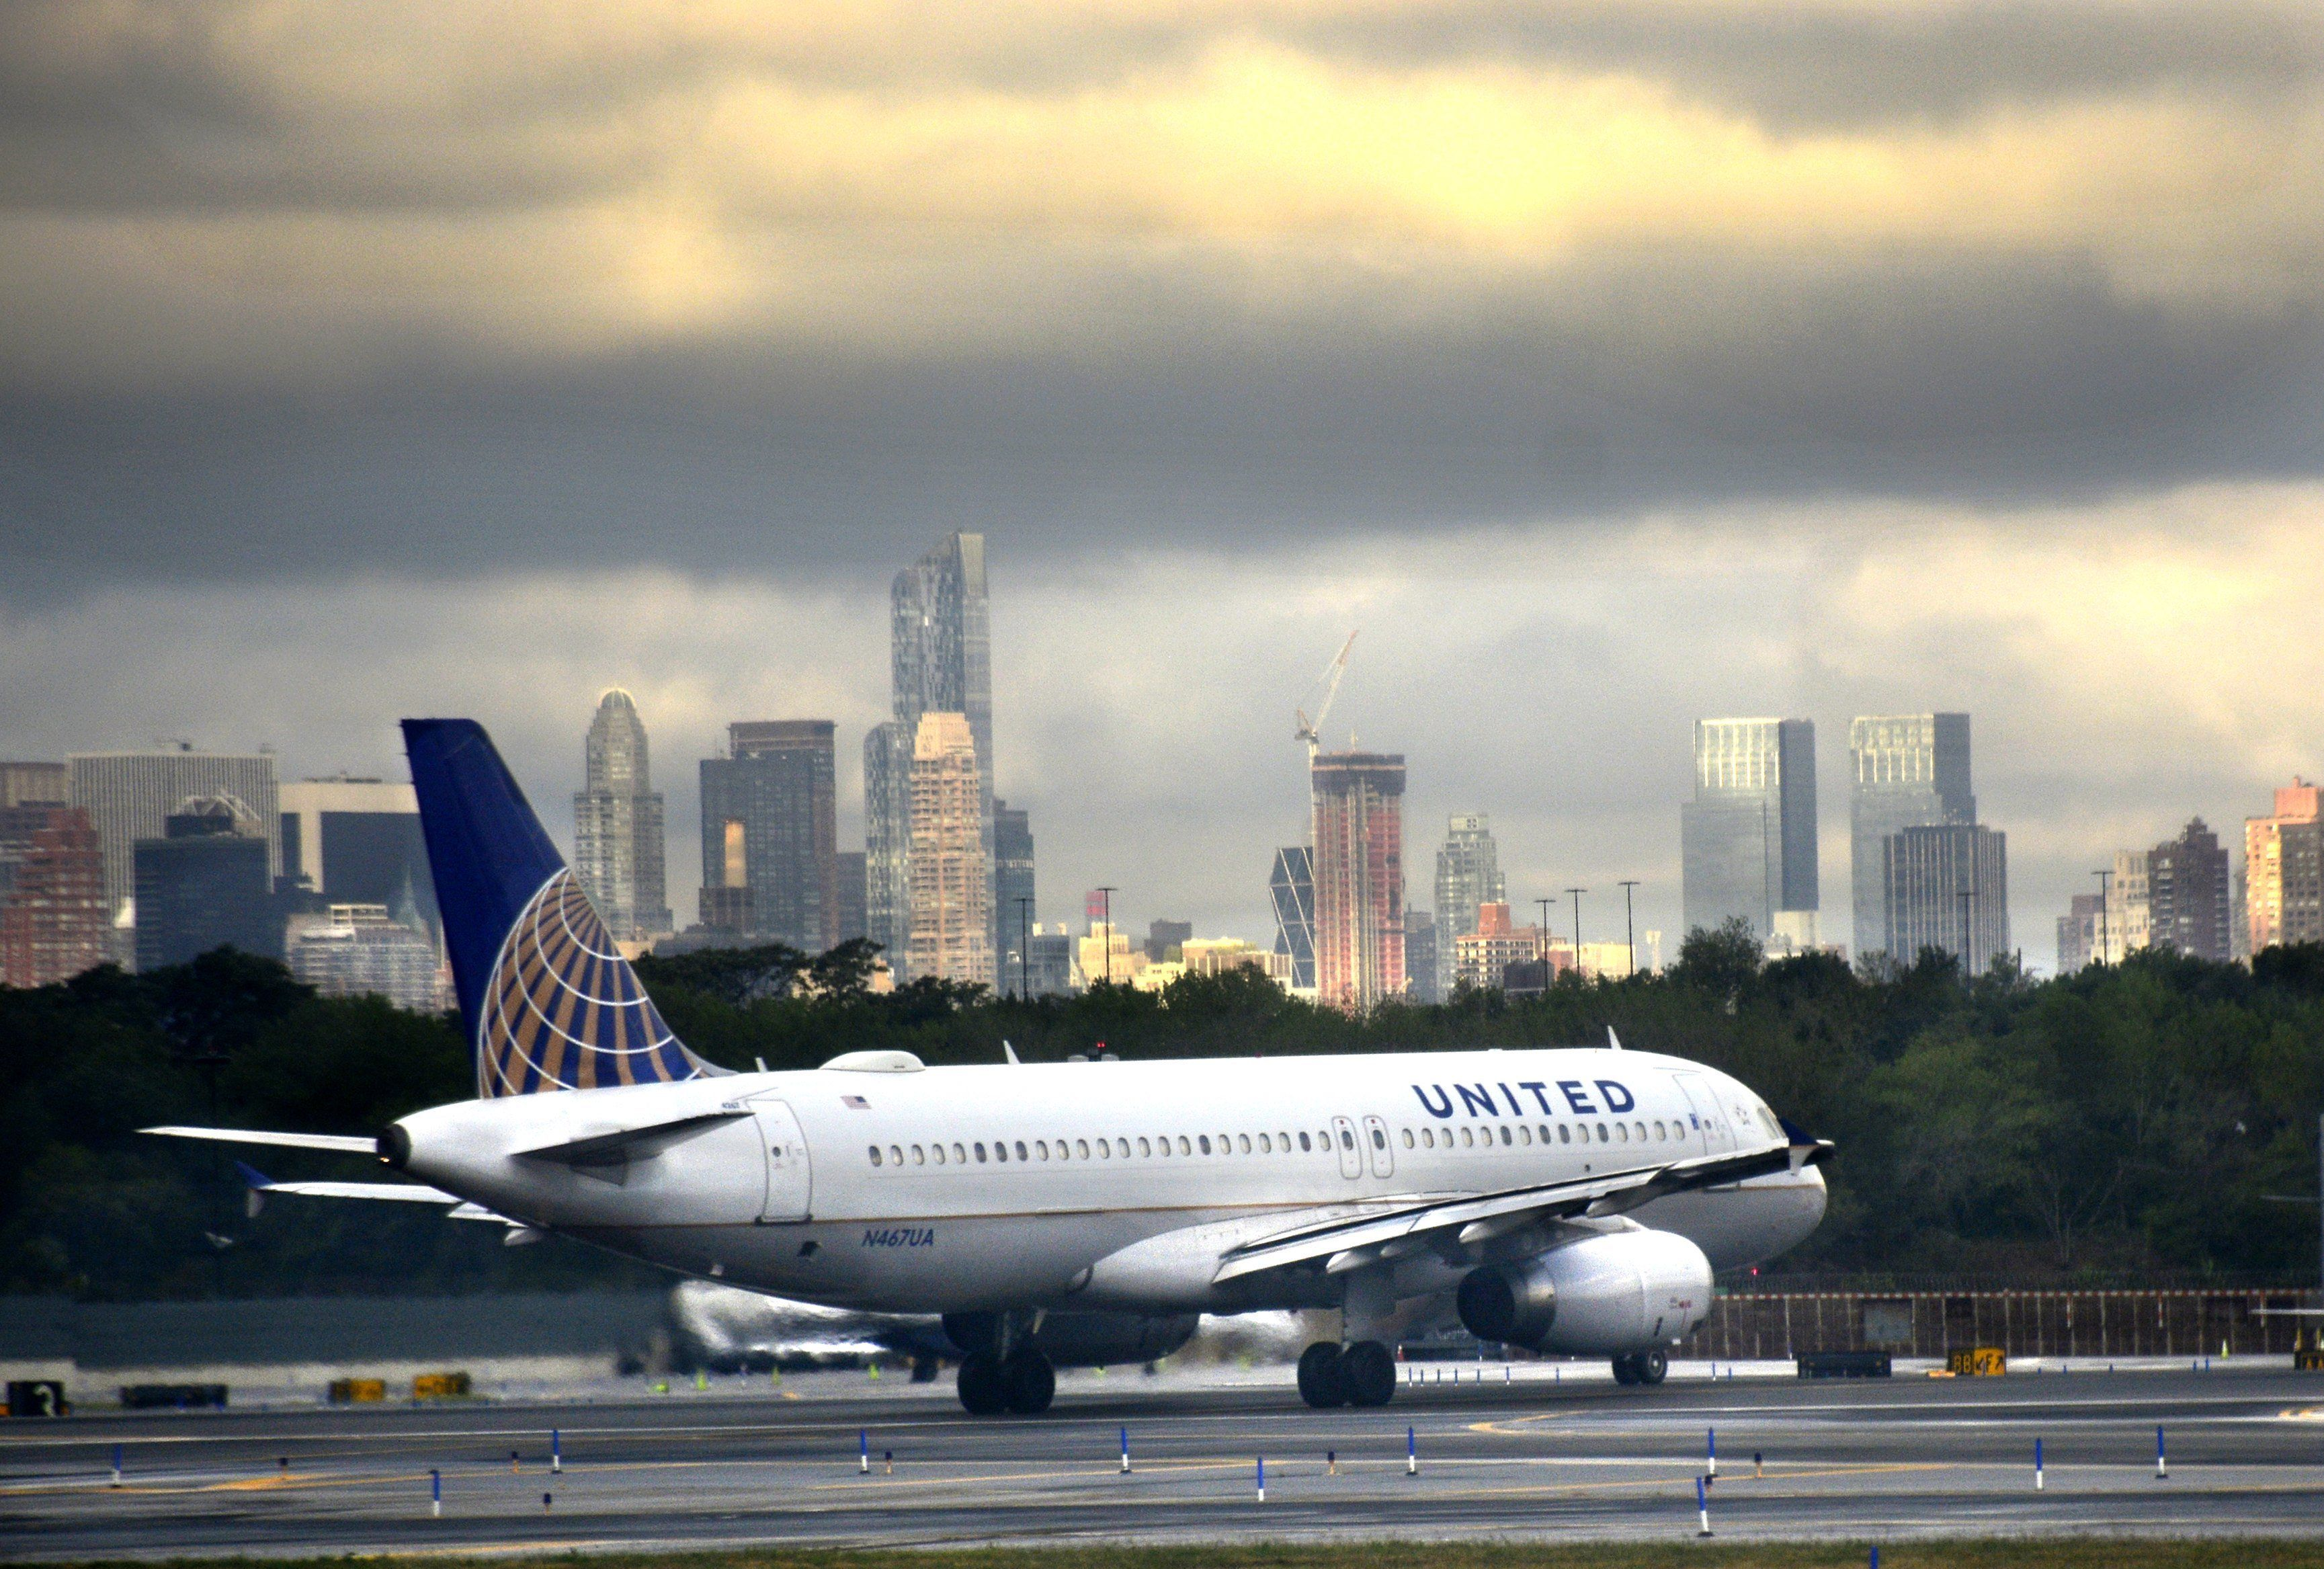 NEW YORK, NY - September 7, 2016:  A United Airlines Airbus A320 passenger jet taxis on the tarmac at LaGuardia Airport in the New York City borough of Queens on September 7, 2016. (Photo by Robert Alexander/Getty Images)